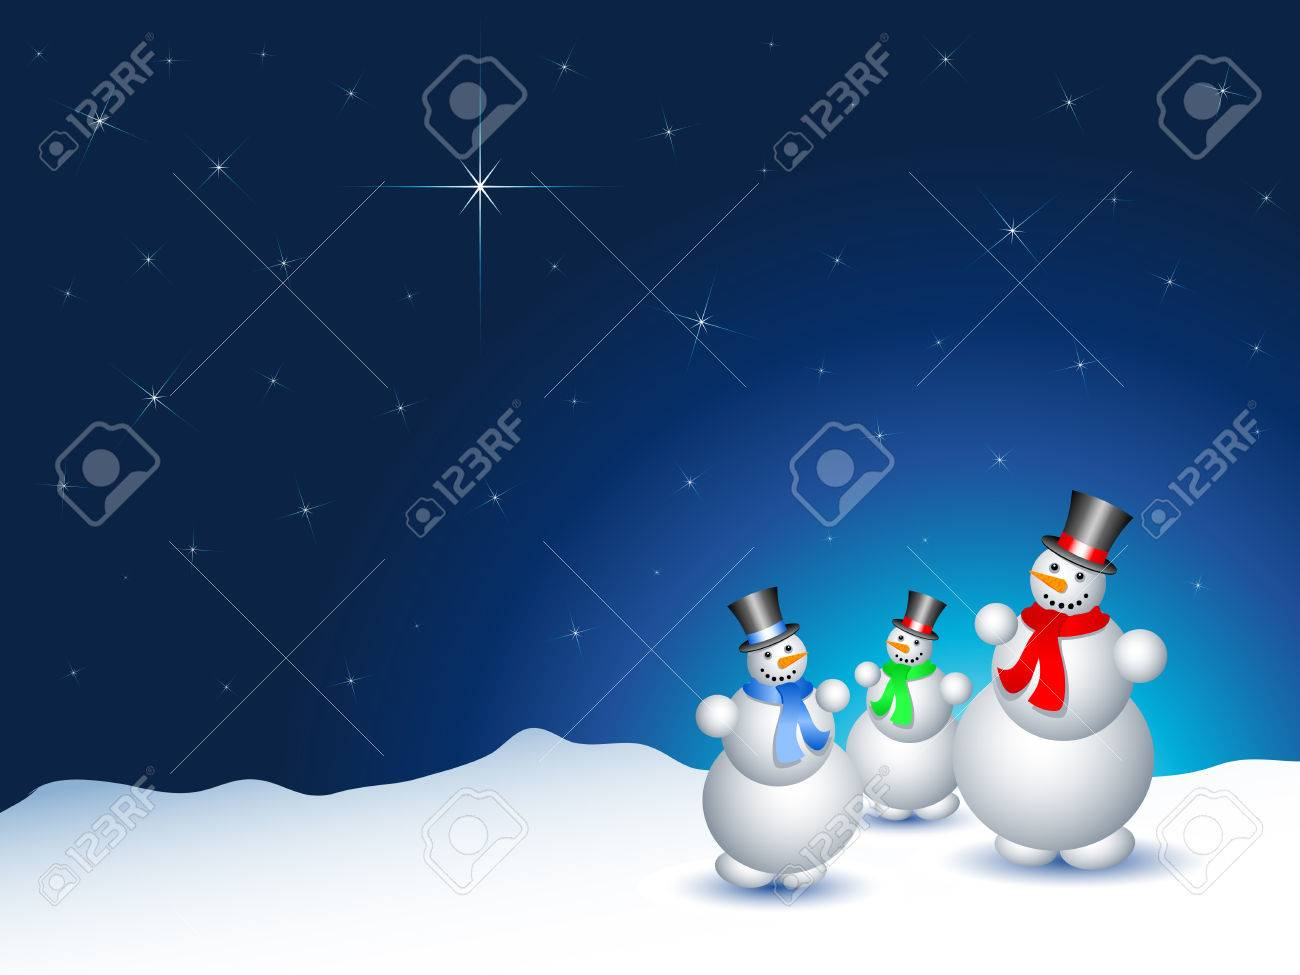 Snowmen on a snowy night with a starry sky Stock Vector - 5842407